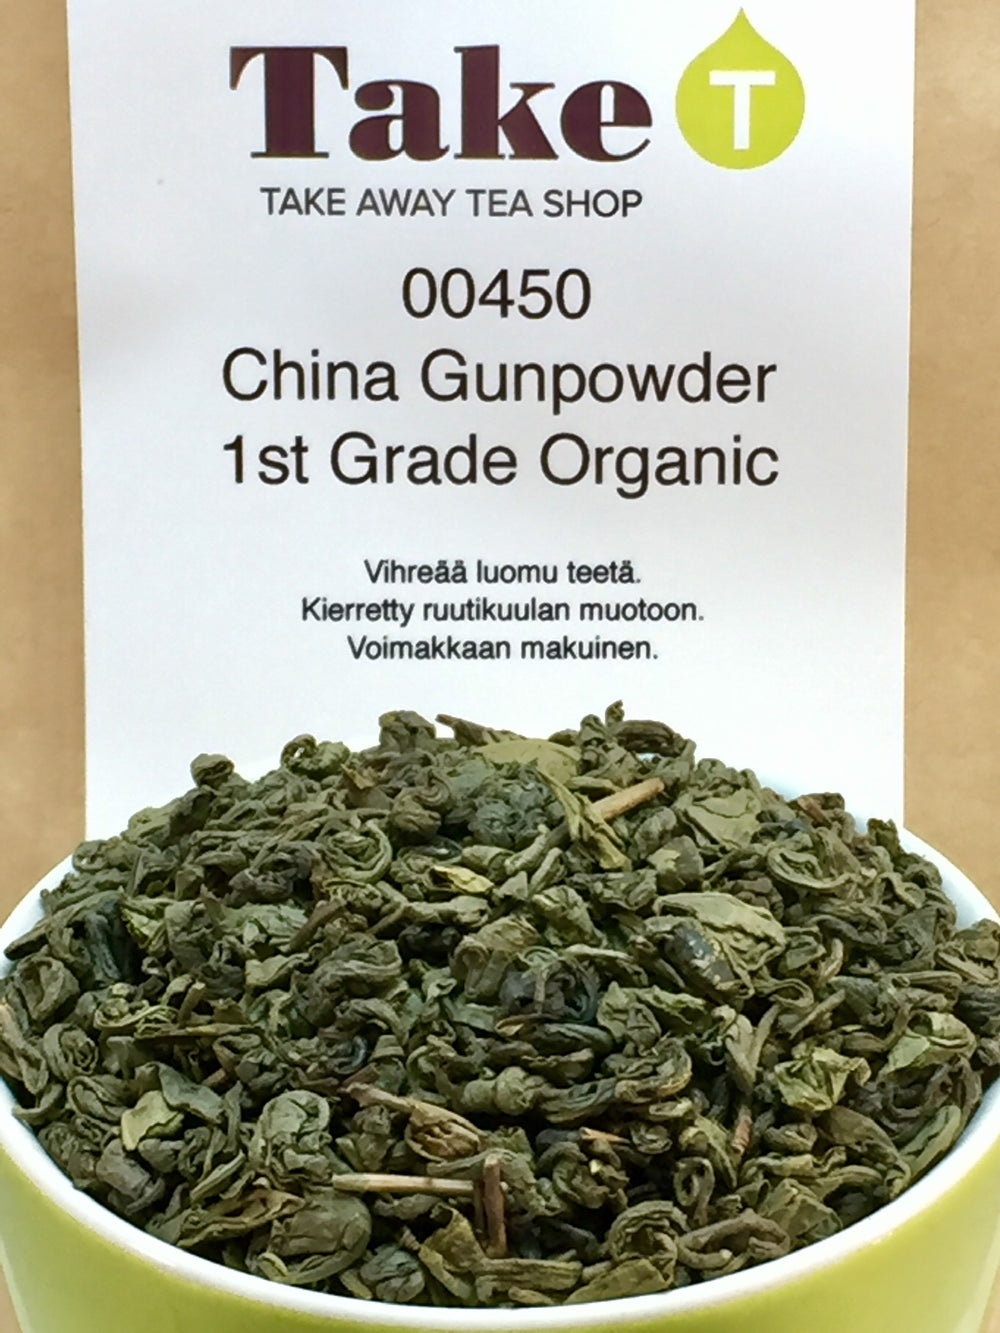 China Gunpowder 1st Grade Organic